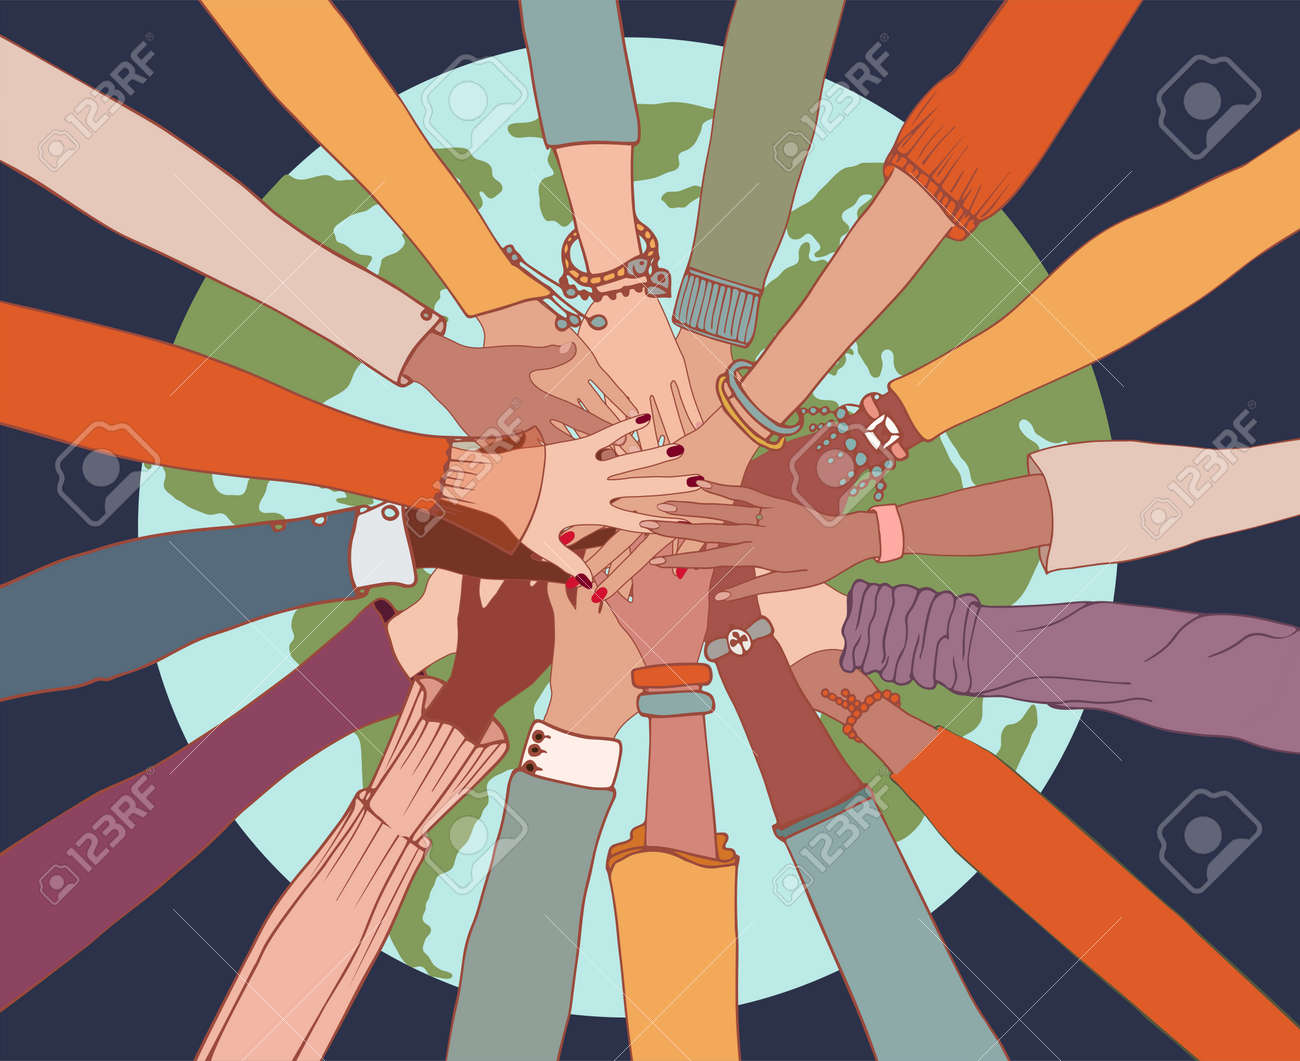 People diversity. Arms and hands on top of each other on the globe.People of diverse race culture ethnicity and country.Integration.Coexistence.Multicultural society. Agreement.Community - 168633982